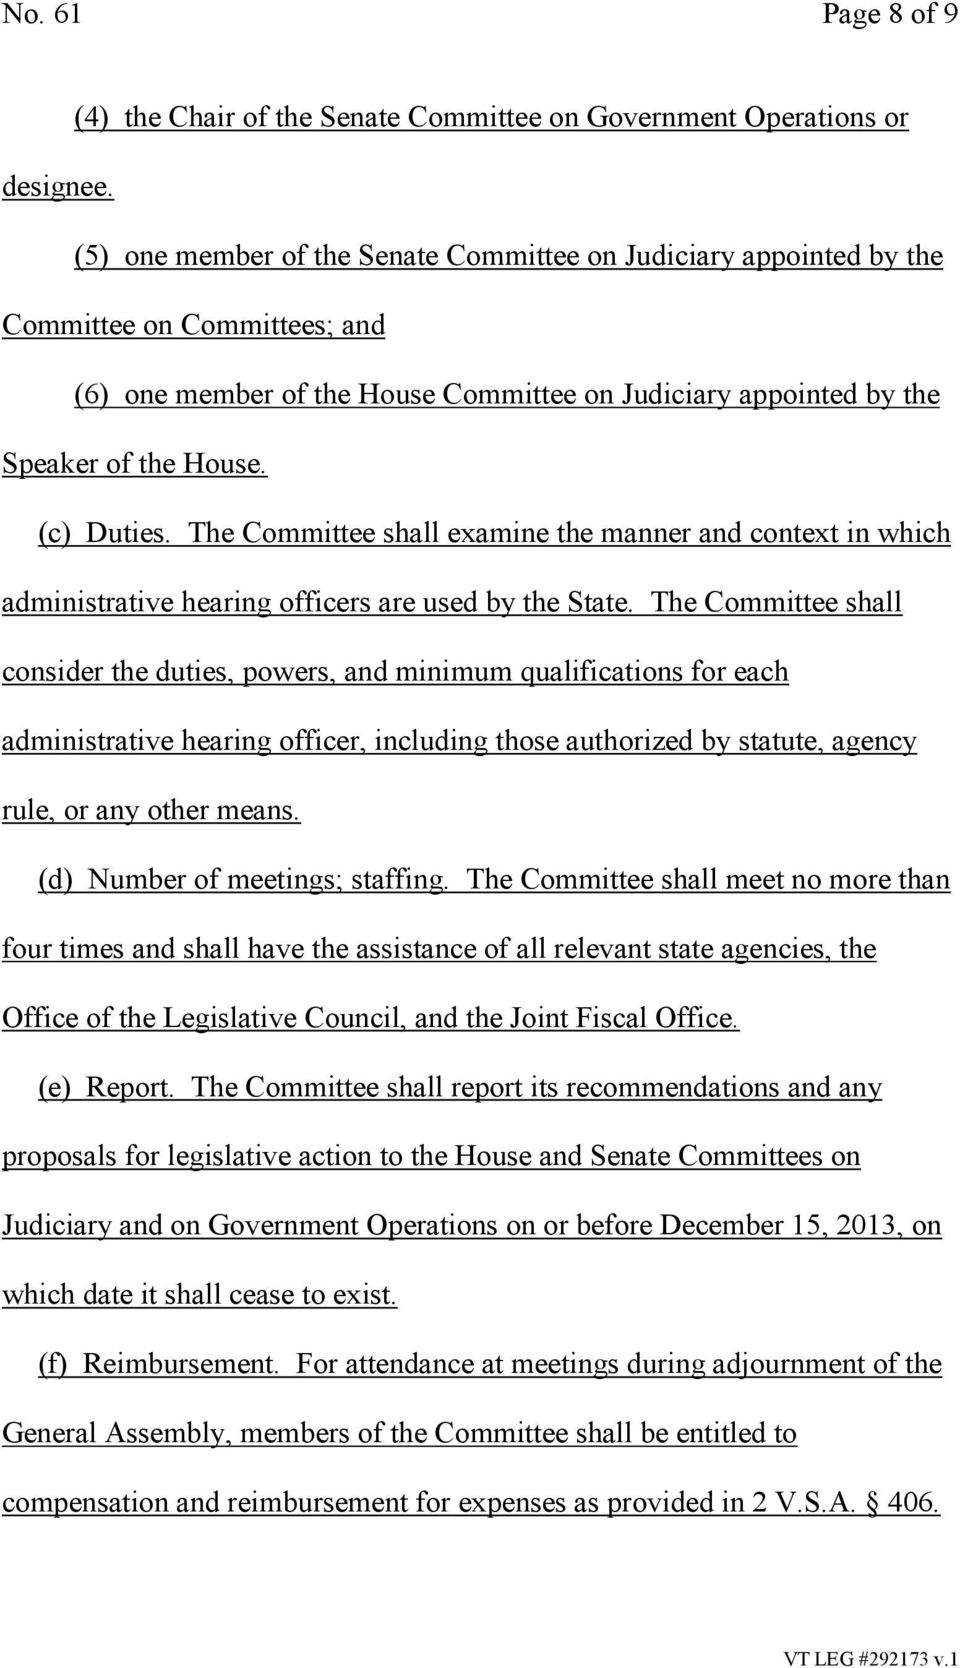 The Committee shall examine the manner and context in which administrative hearing officers are used by the State.